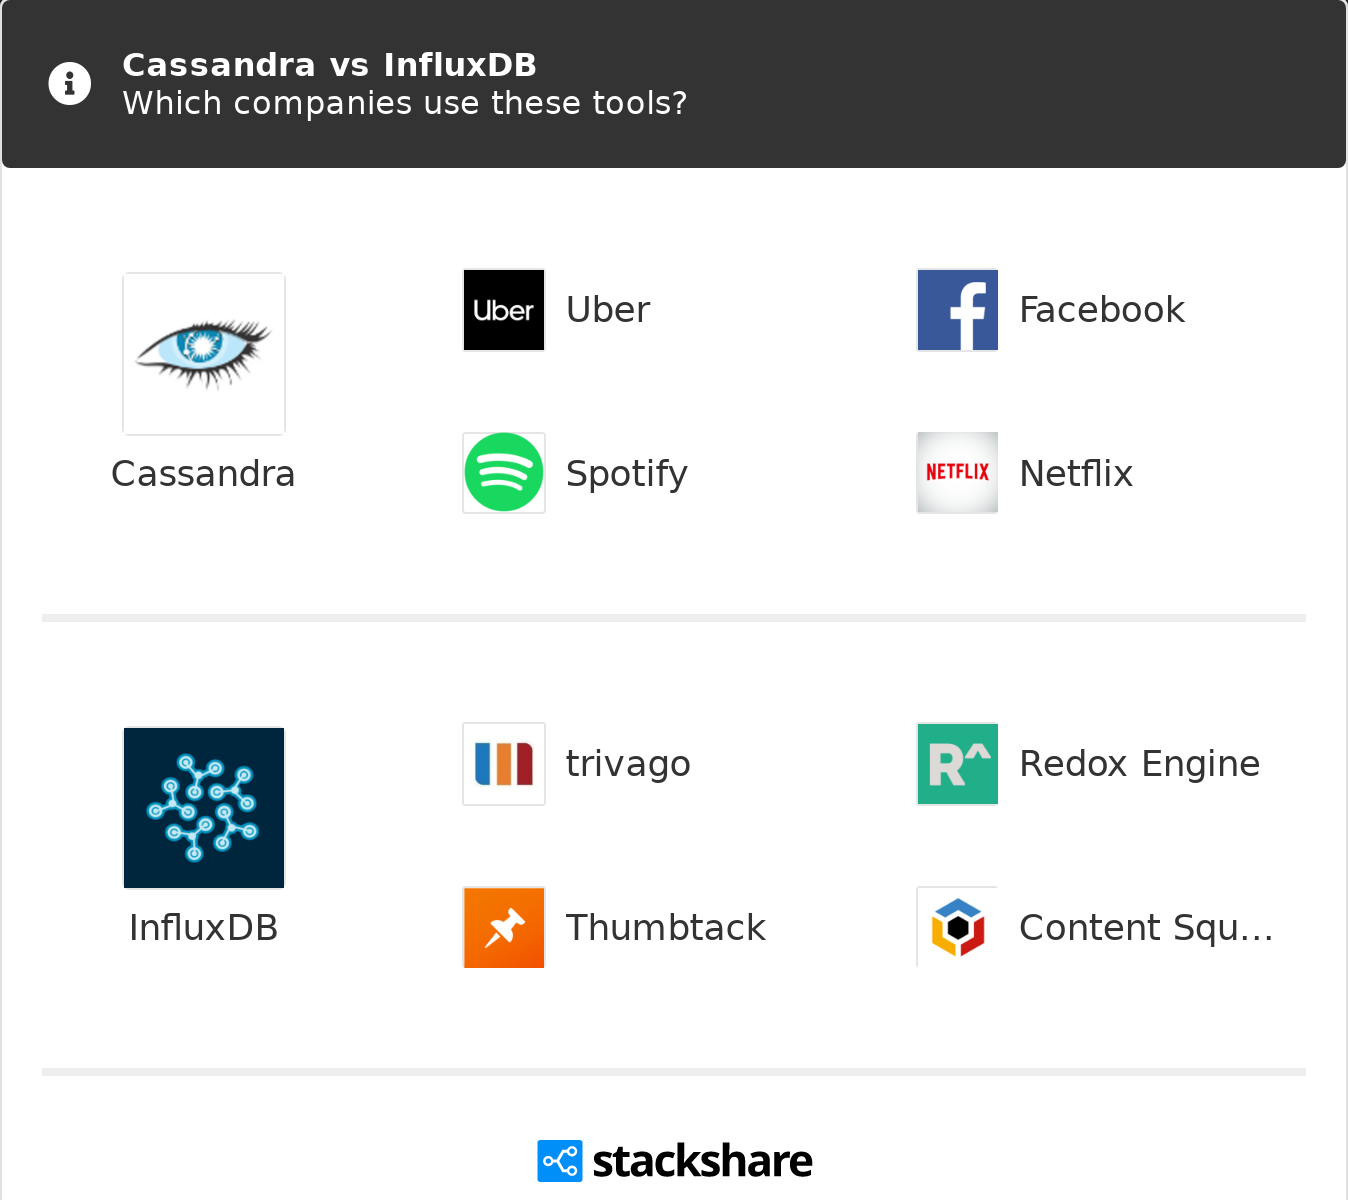 Cassandra vs InfluxDB | What are the differences?